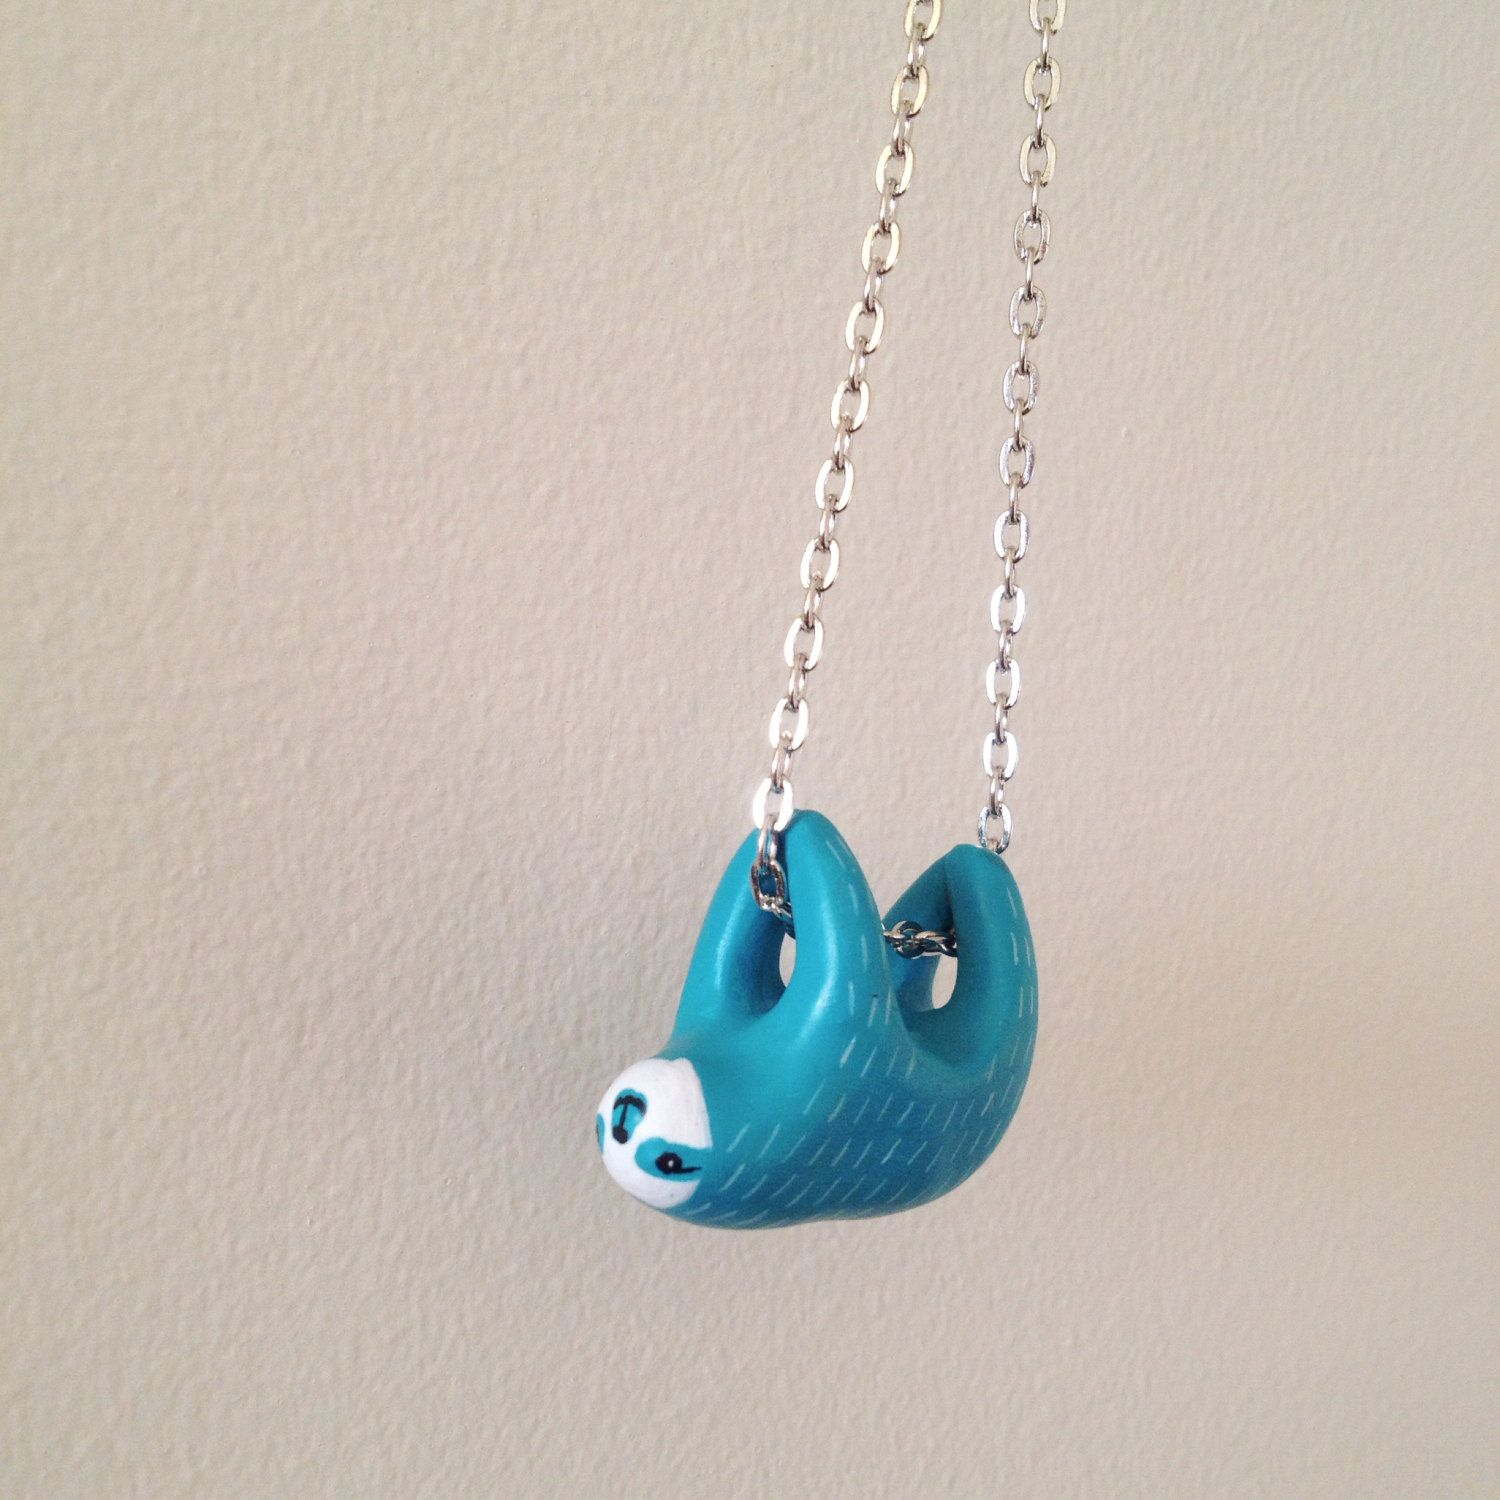 product sloth ceramic pendant necklace